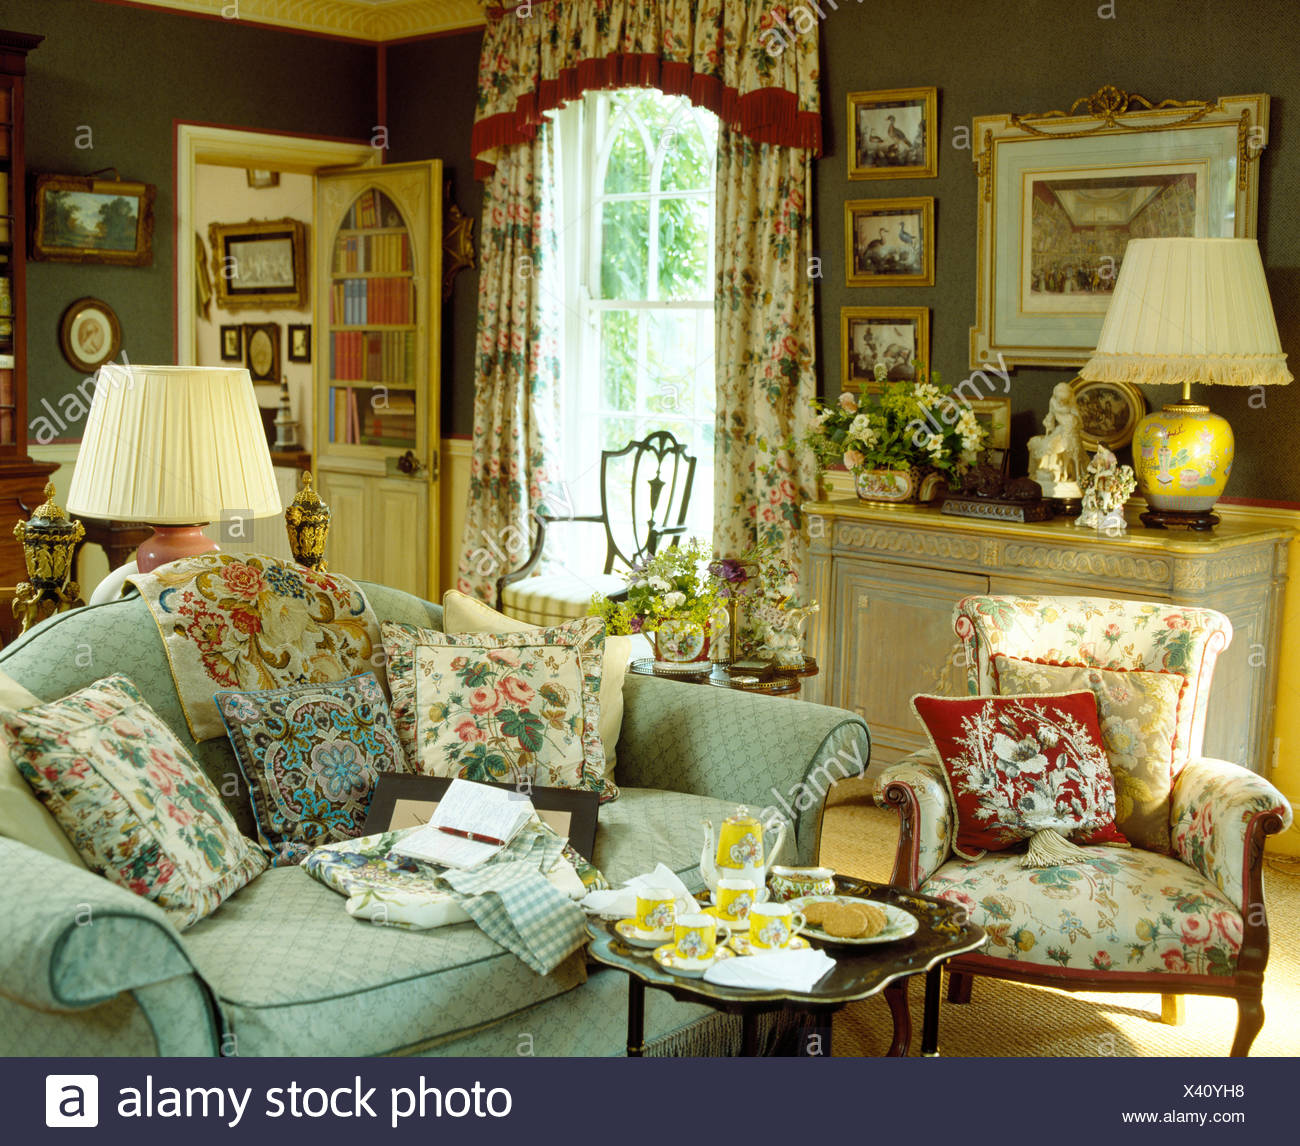 Floral Cushions On Pale Blue Sofa Beside Floral Sofa And Small Table Set  For Tea In Comfortable Green Country Living Room